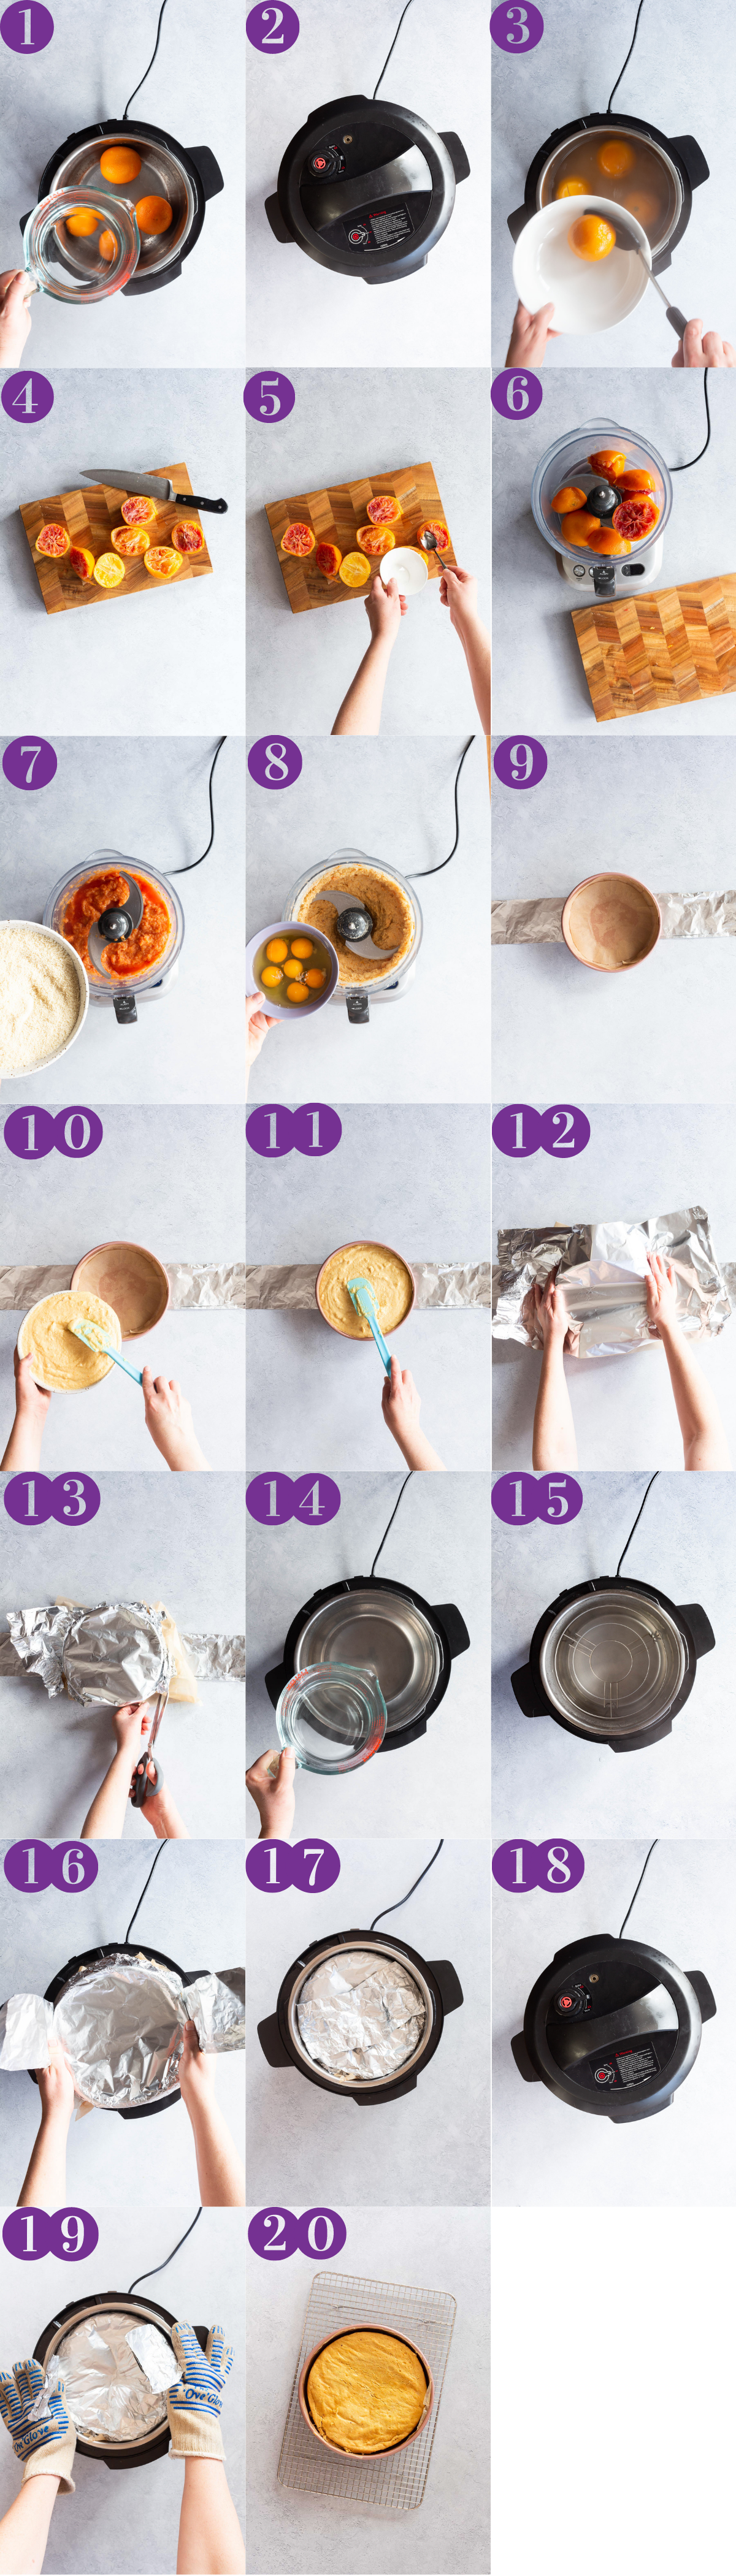 Process shots for making the Whole Blood Orange Cake in the Instant Pot/Multicooker/Pressure Cooker